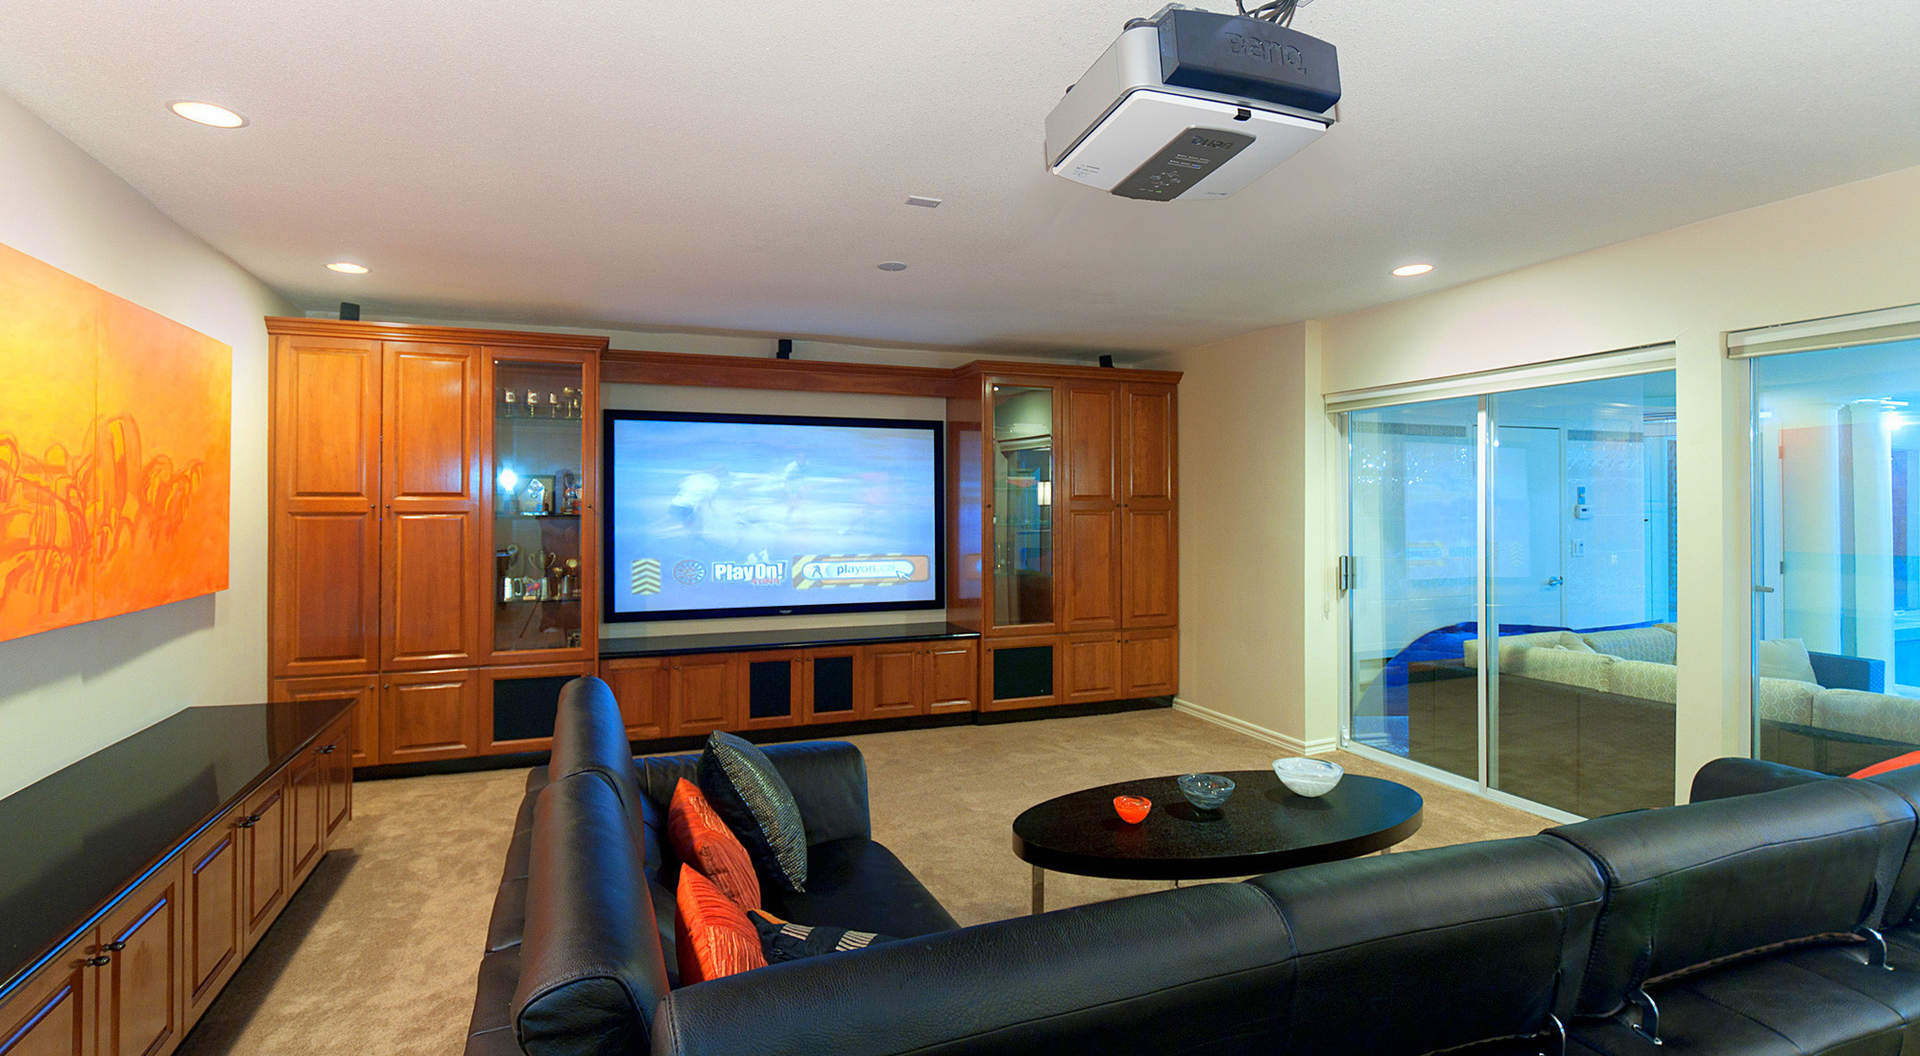 State-of-the-Art Home Theatre